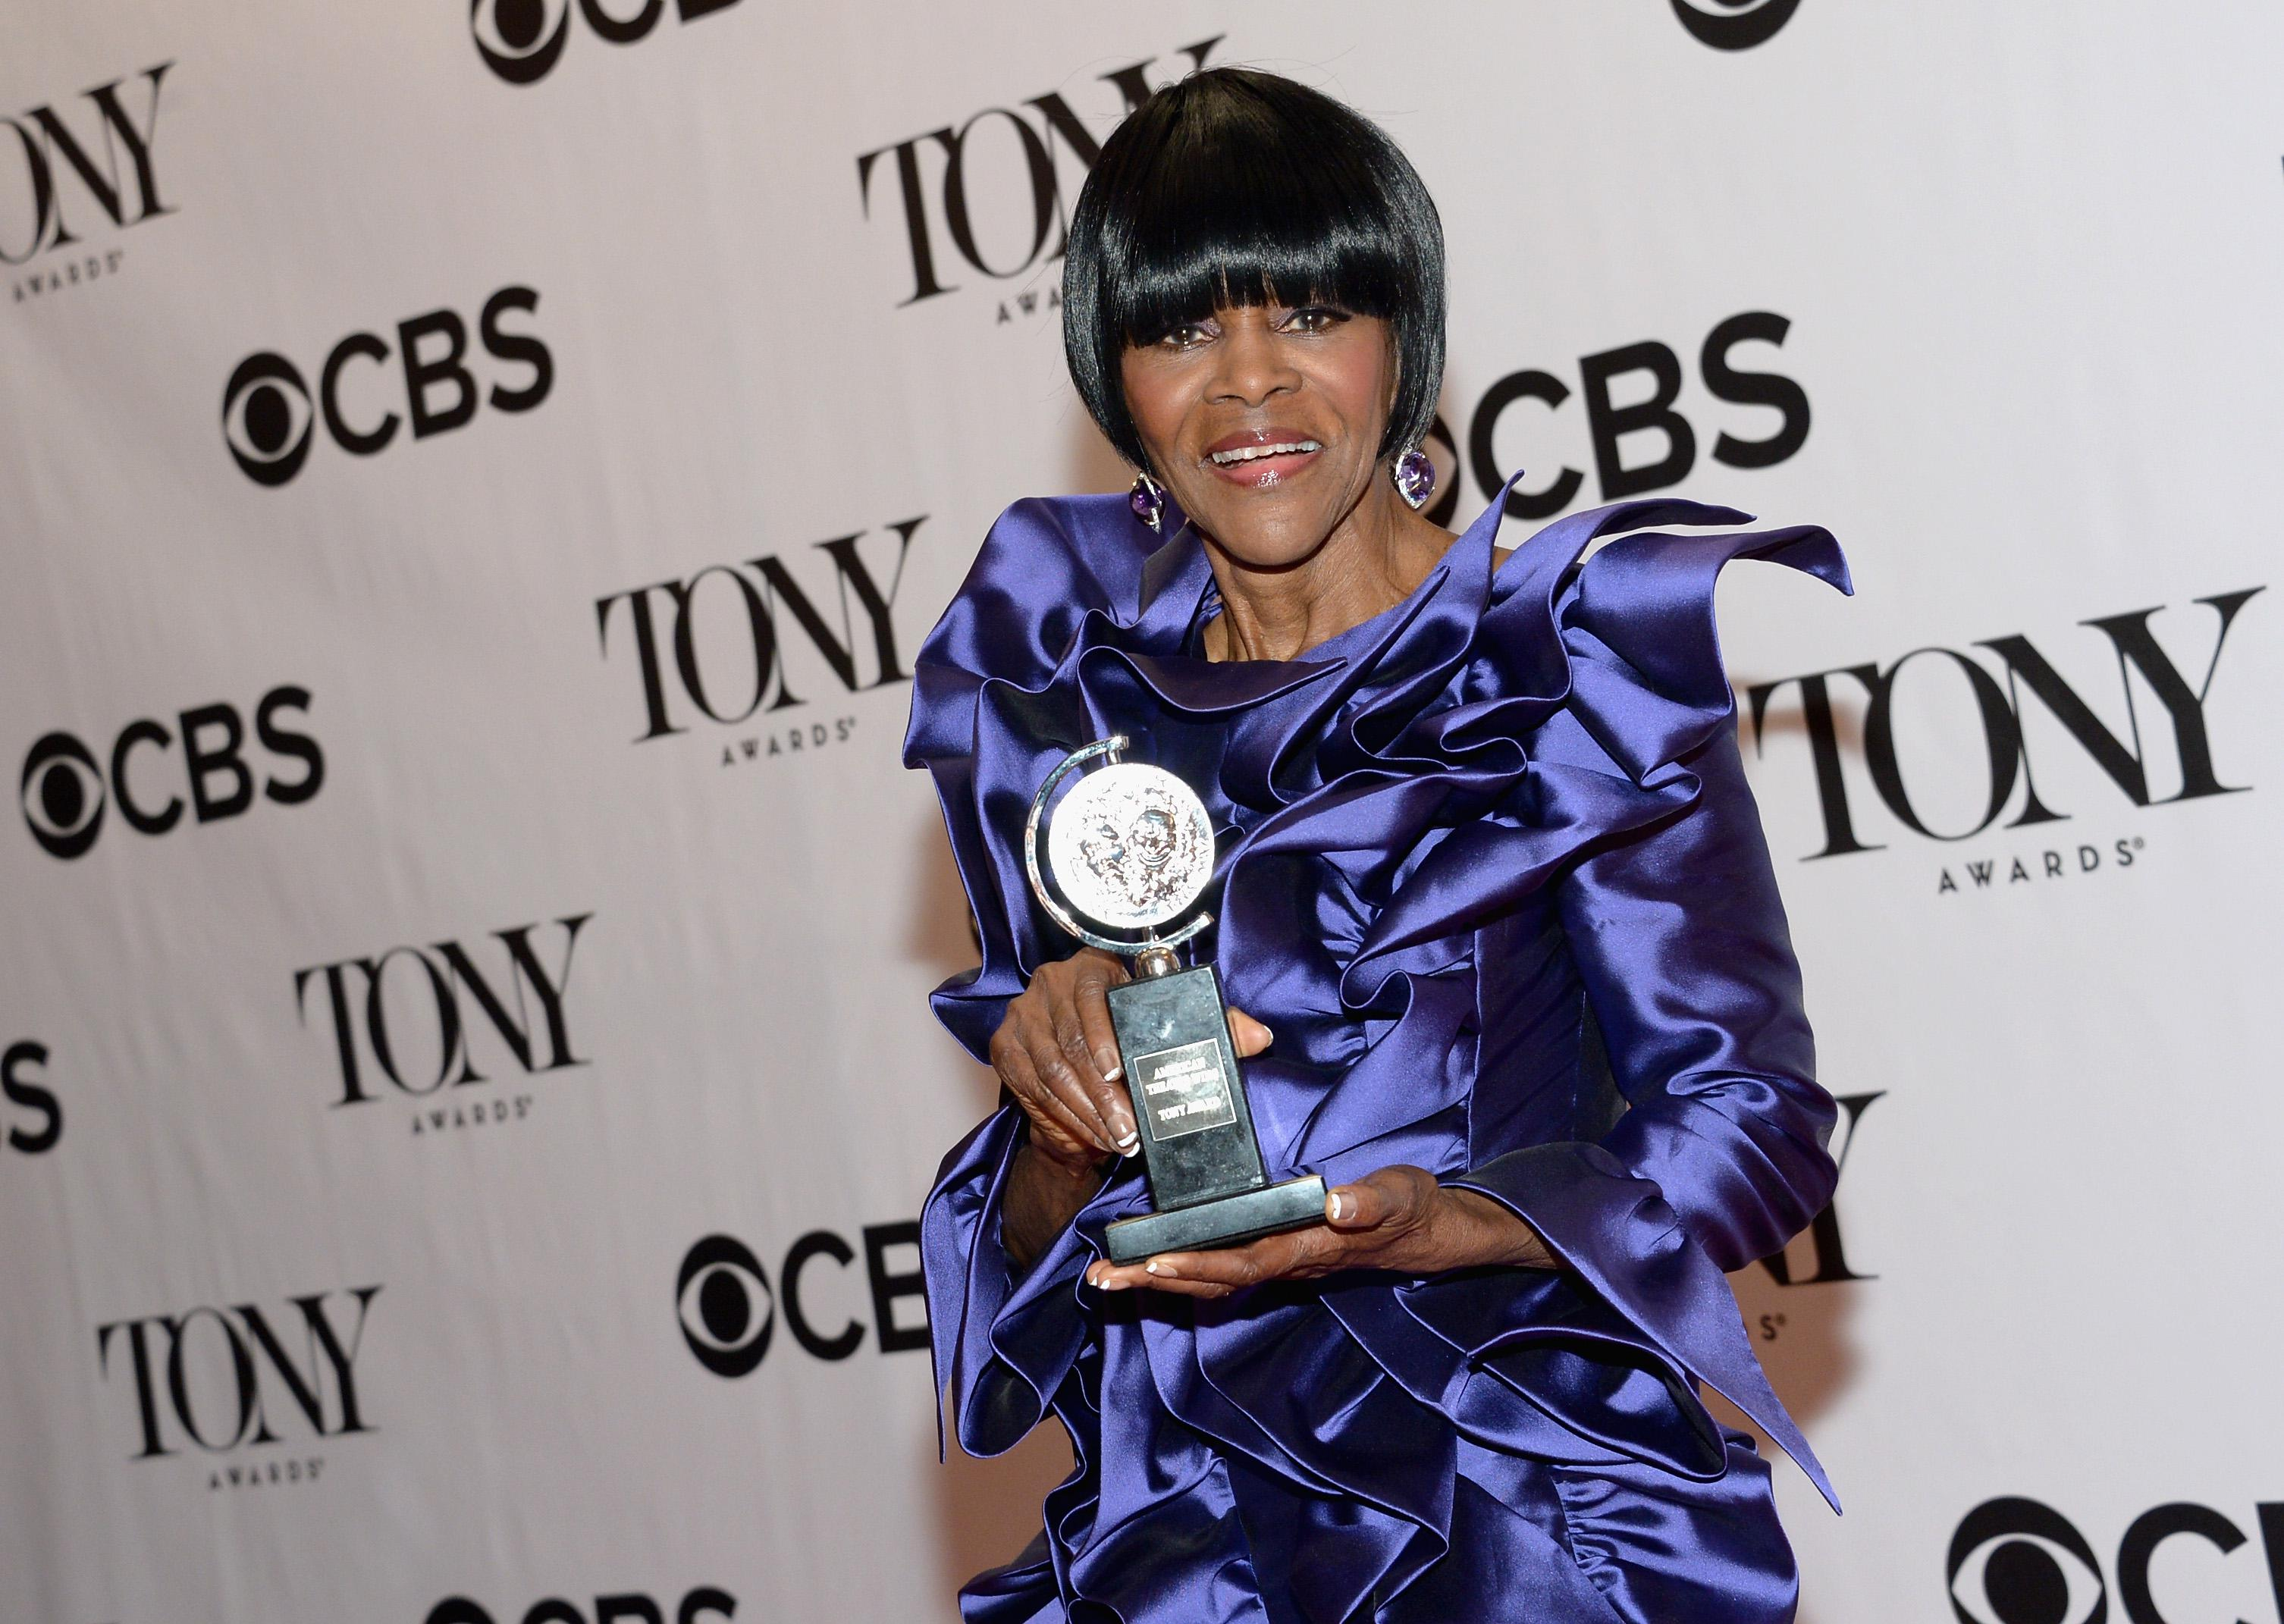 The 67th Annual Tony Awards - Press Room